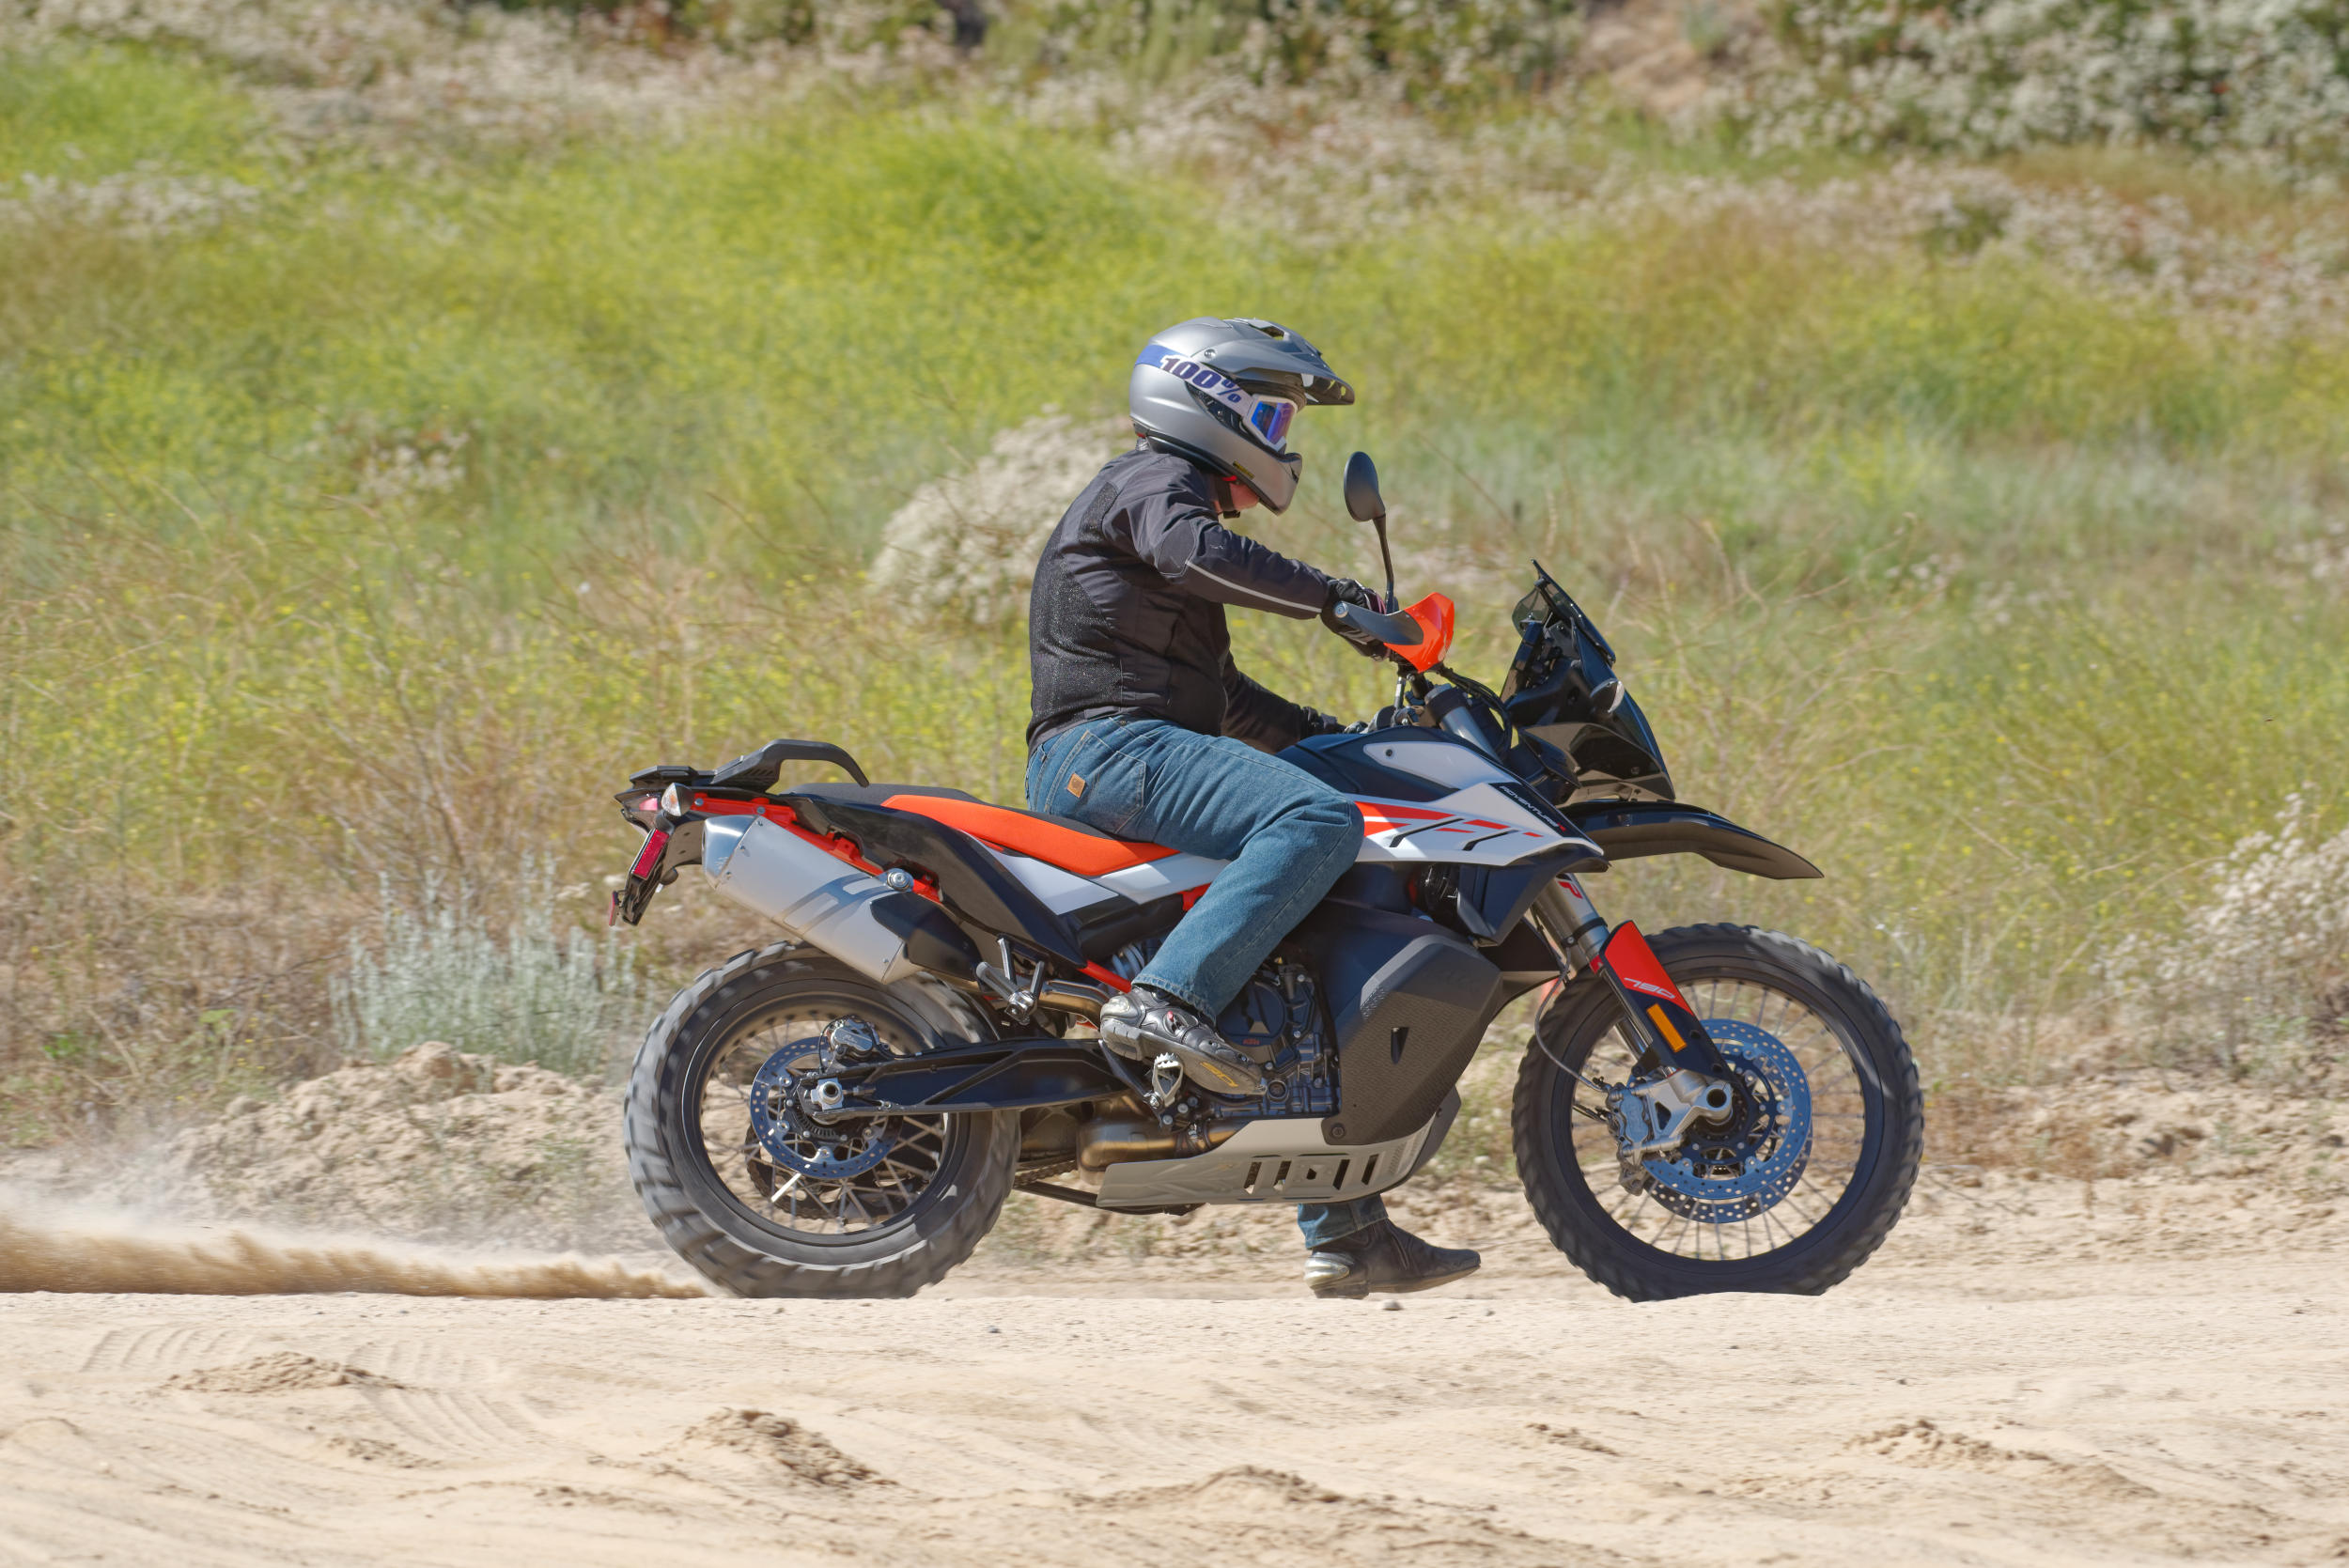 2019 Ktm 790 Adventure And 790 Adventure R Md Ride Review